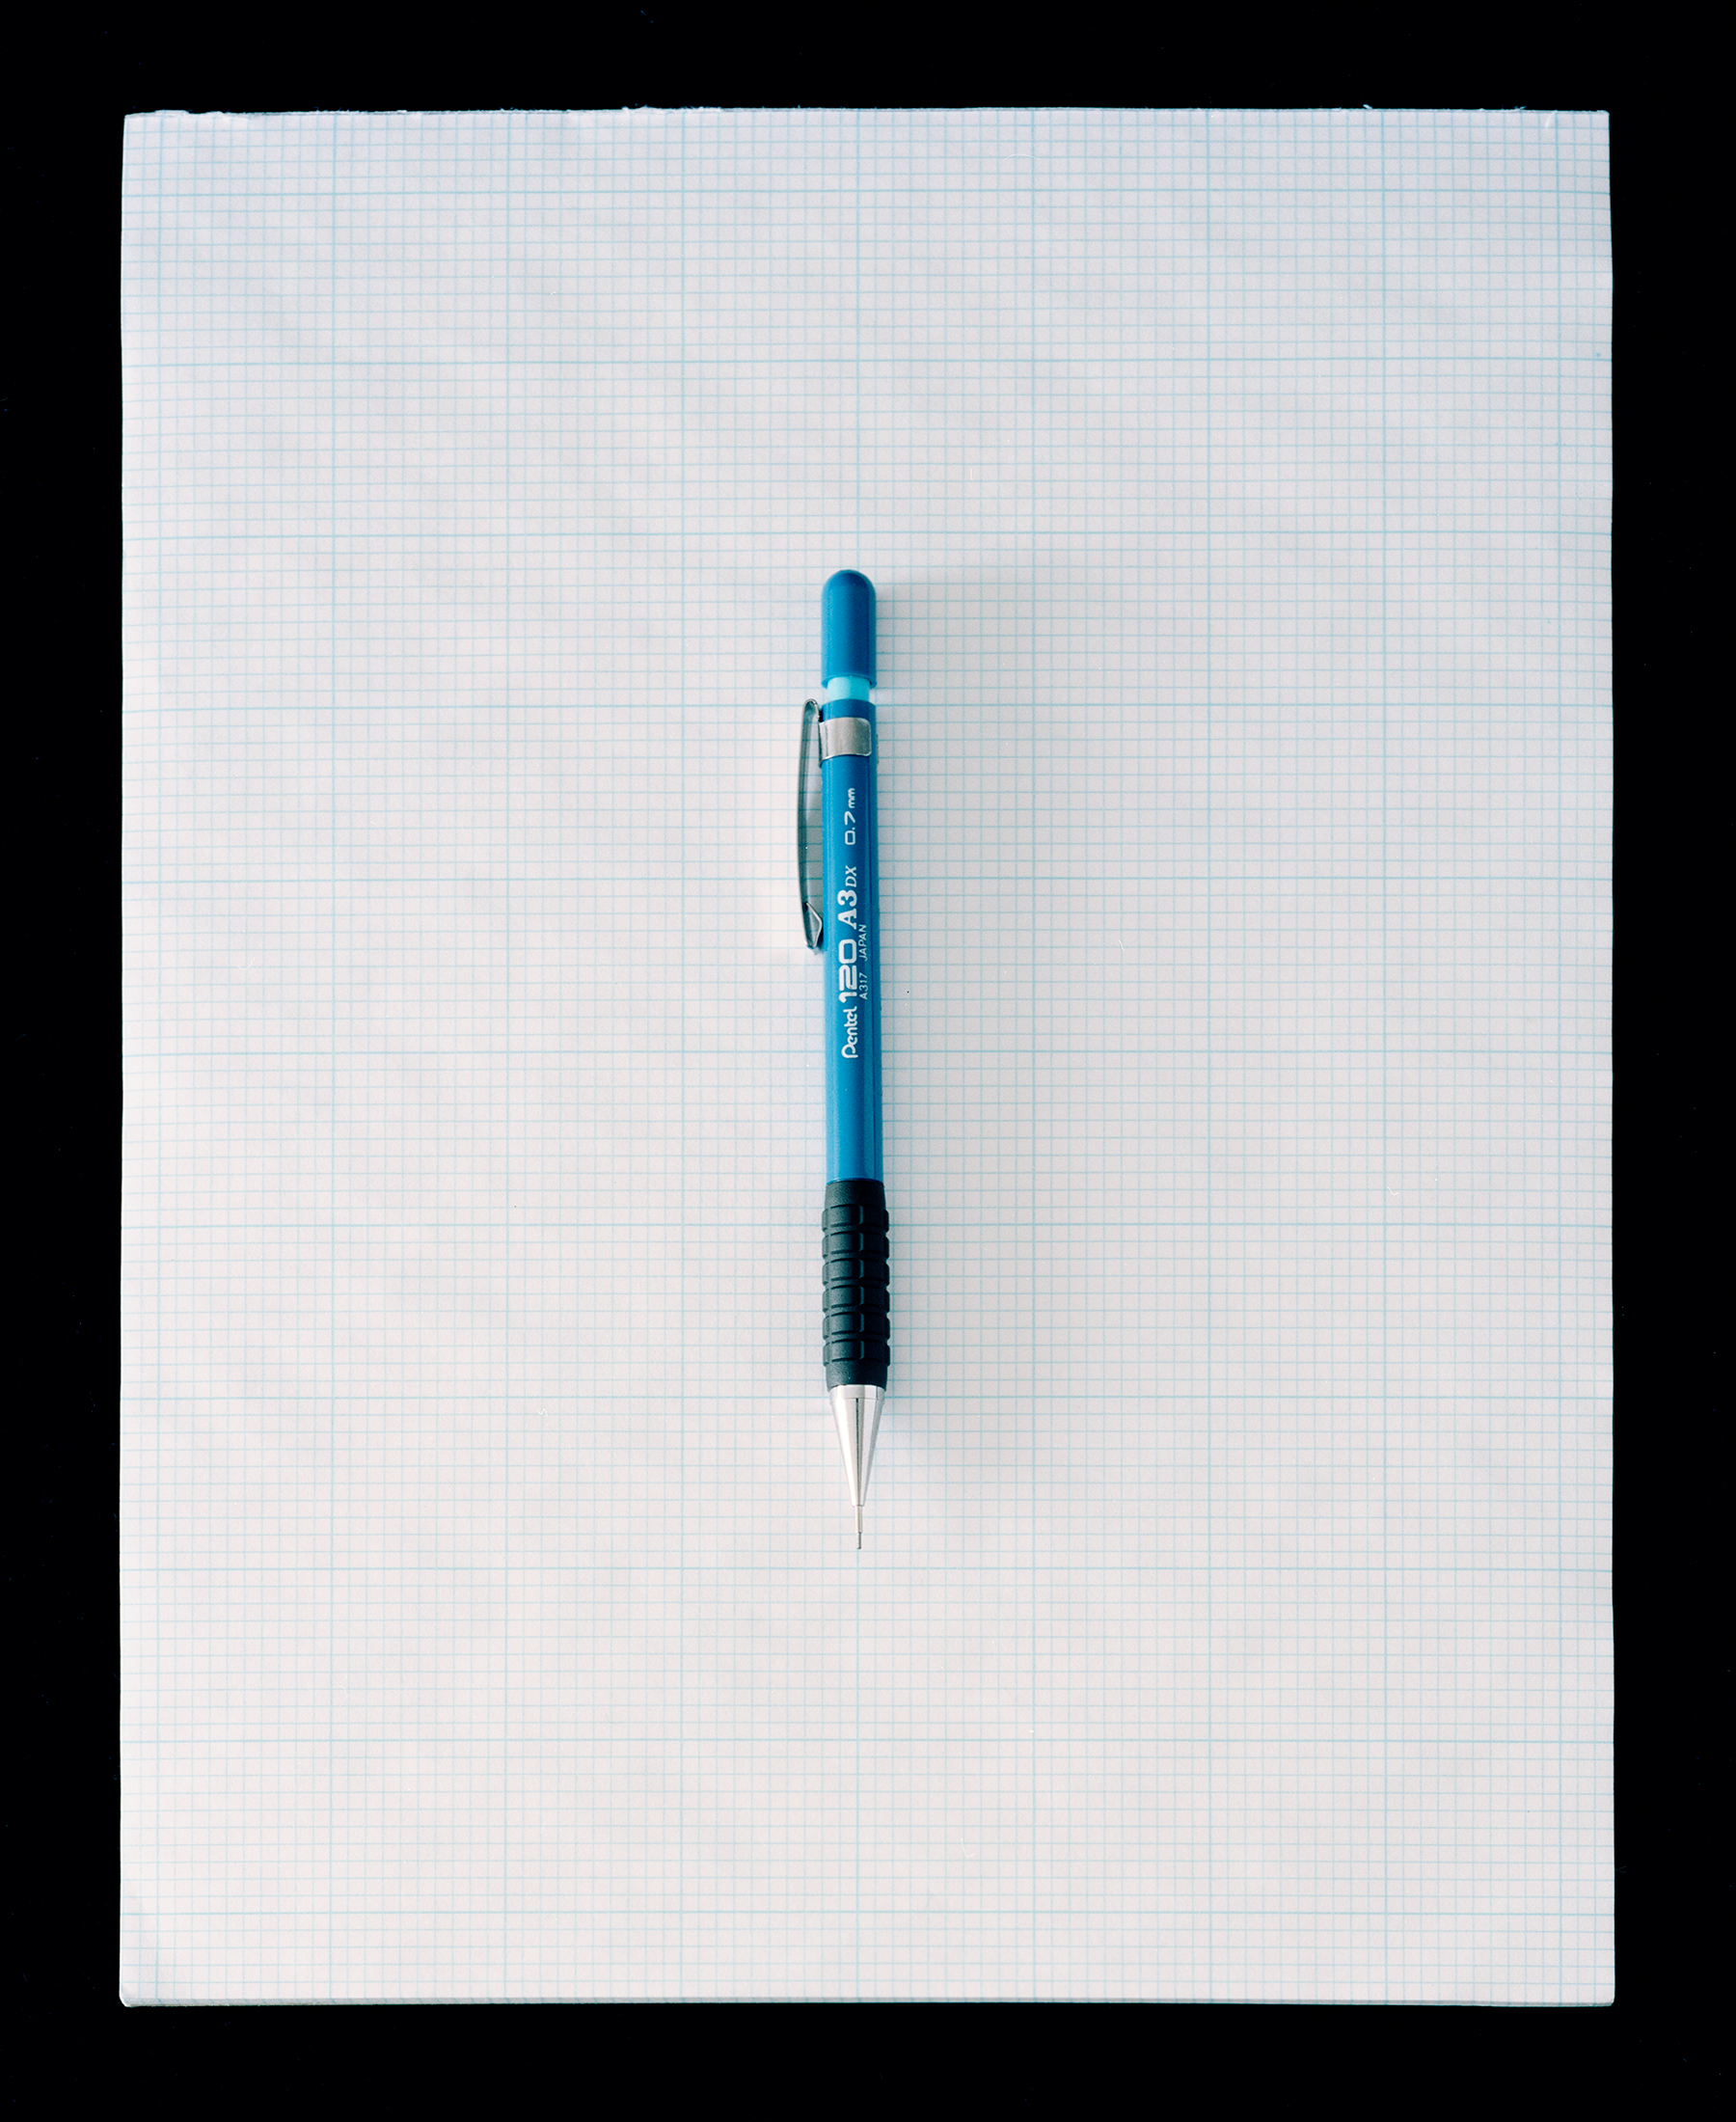 Culture Handbook No. 011 (mechanical pencil, graph paper), 2017